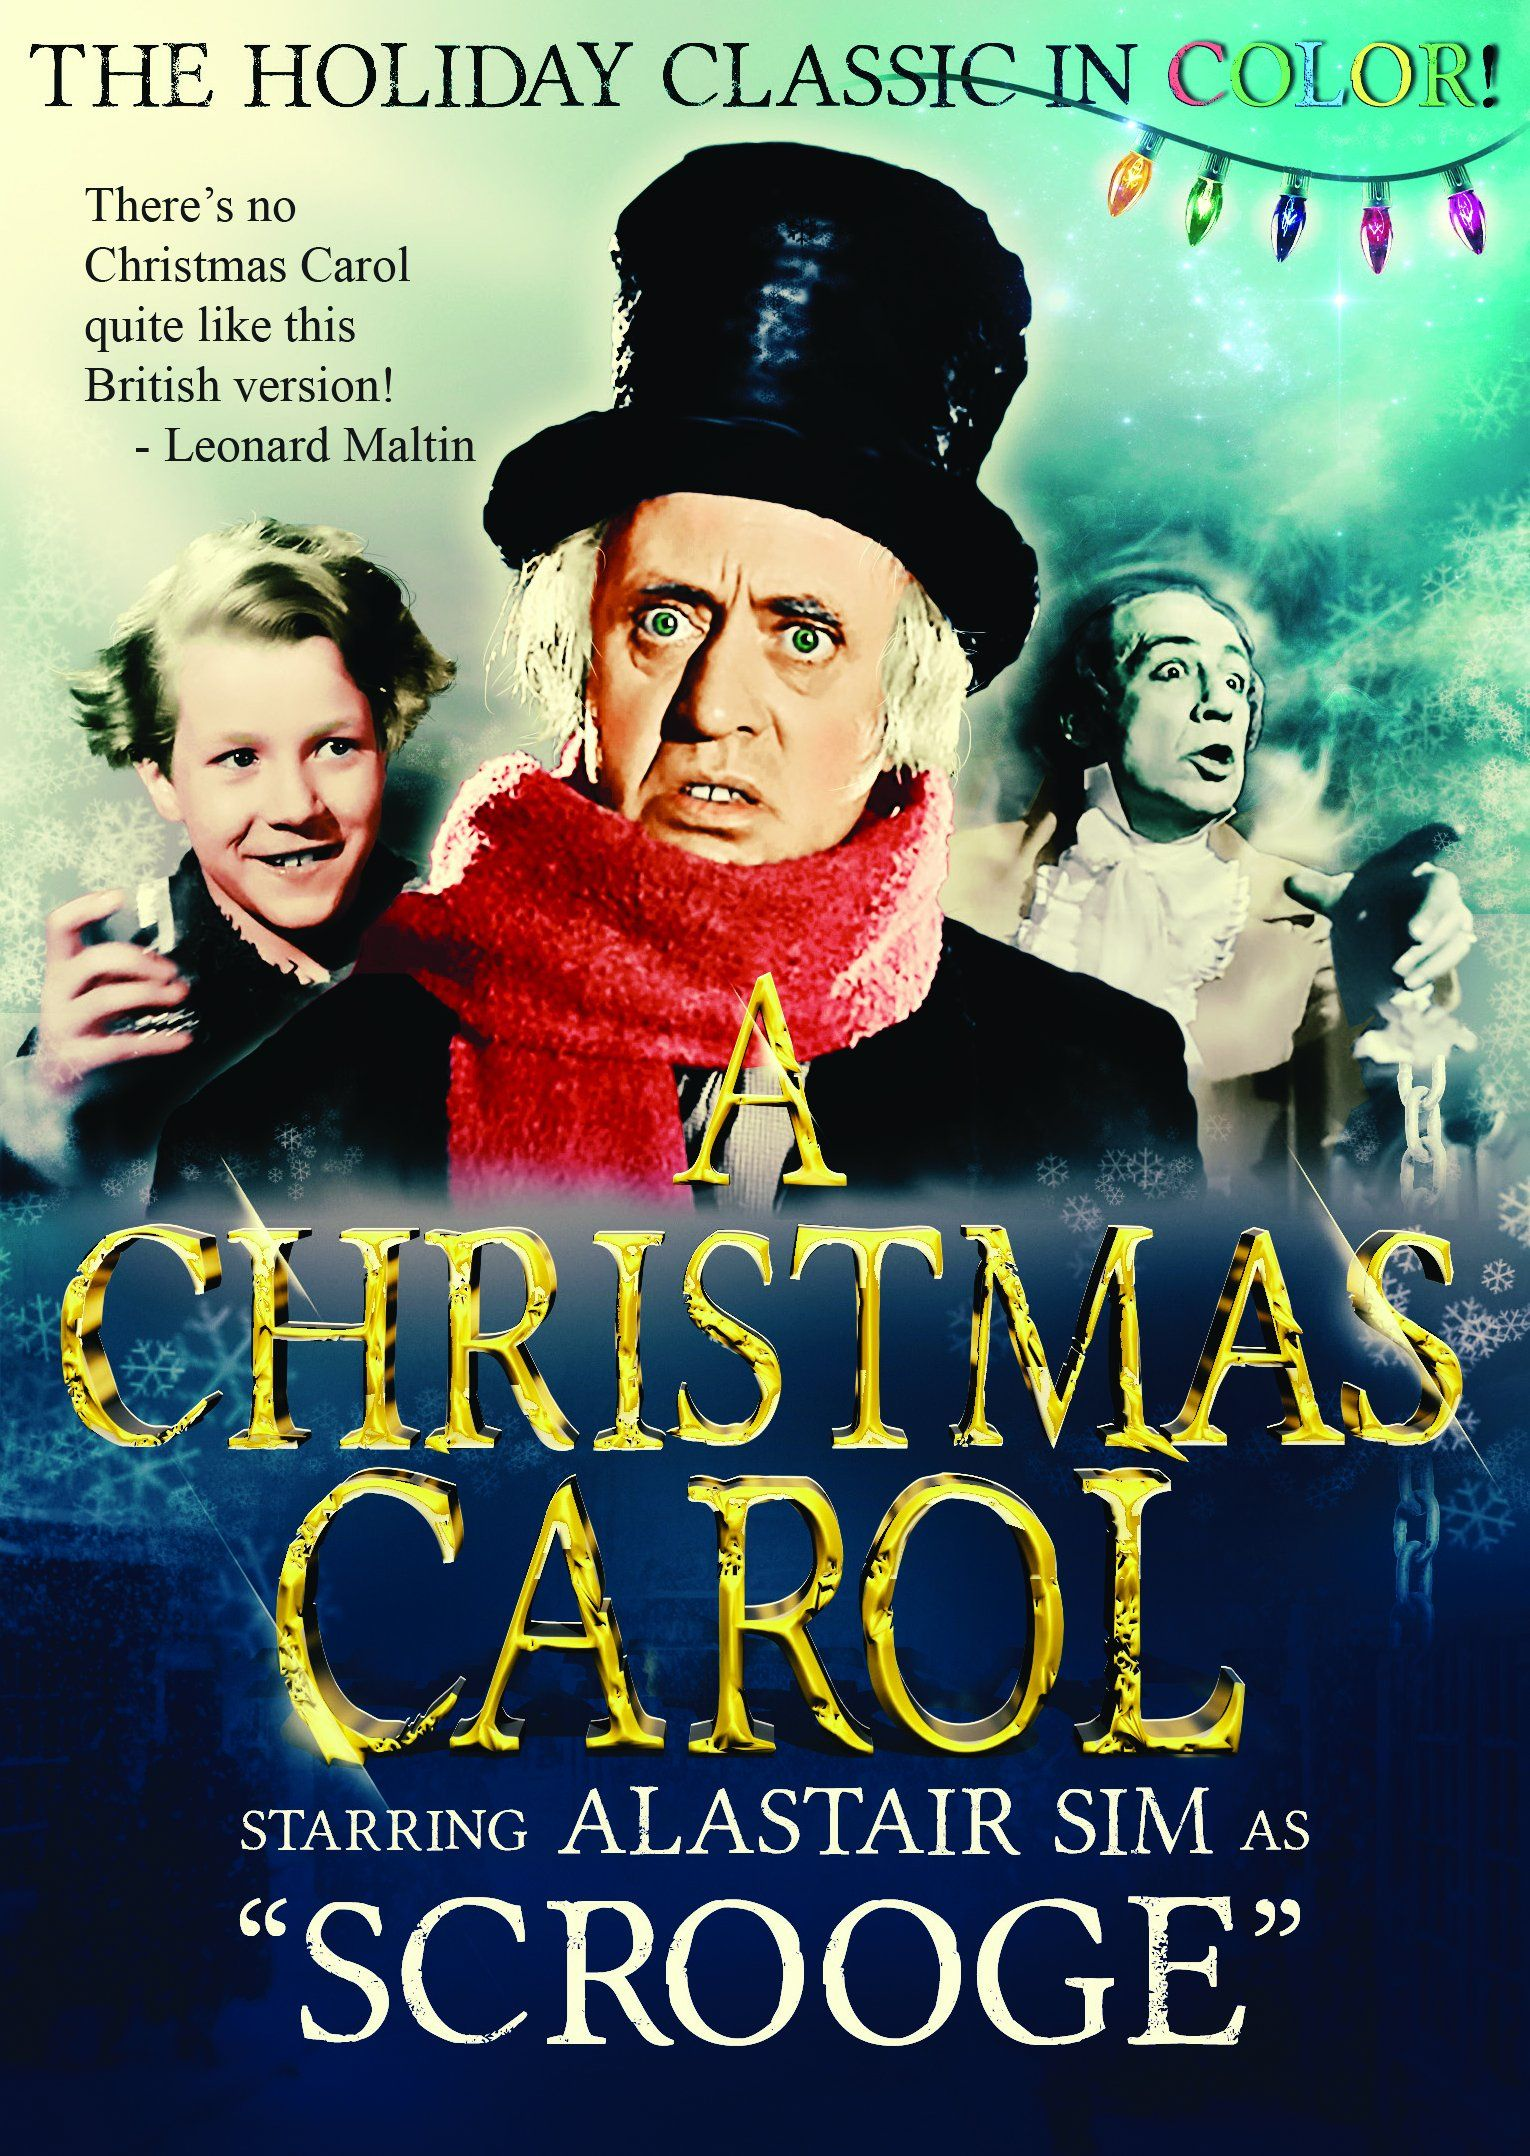 Colorized version of A Christmas Carol by Charles Dickens